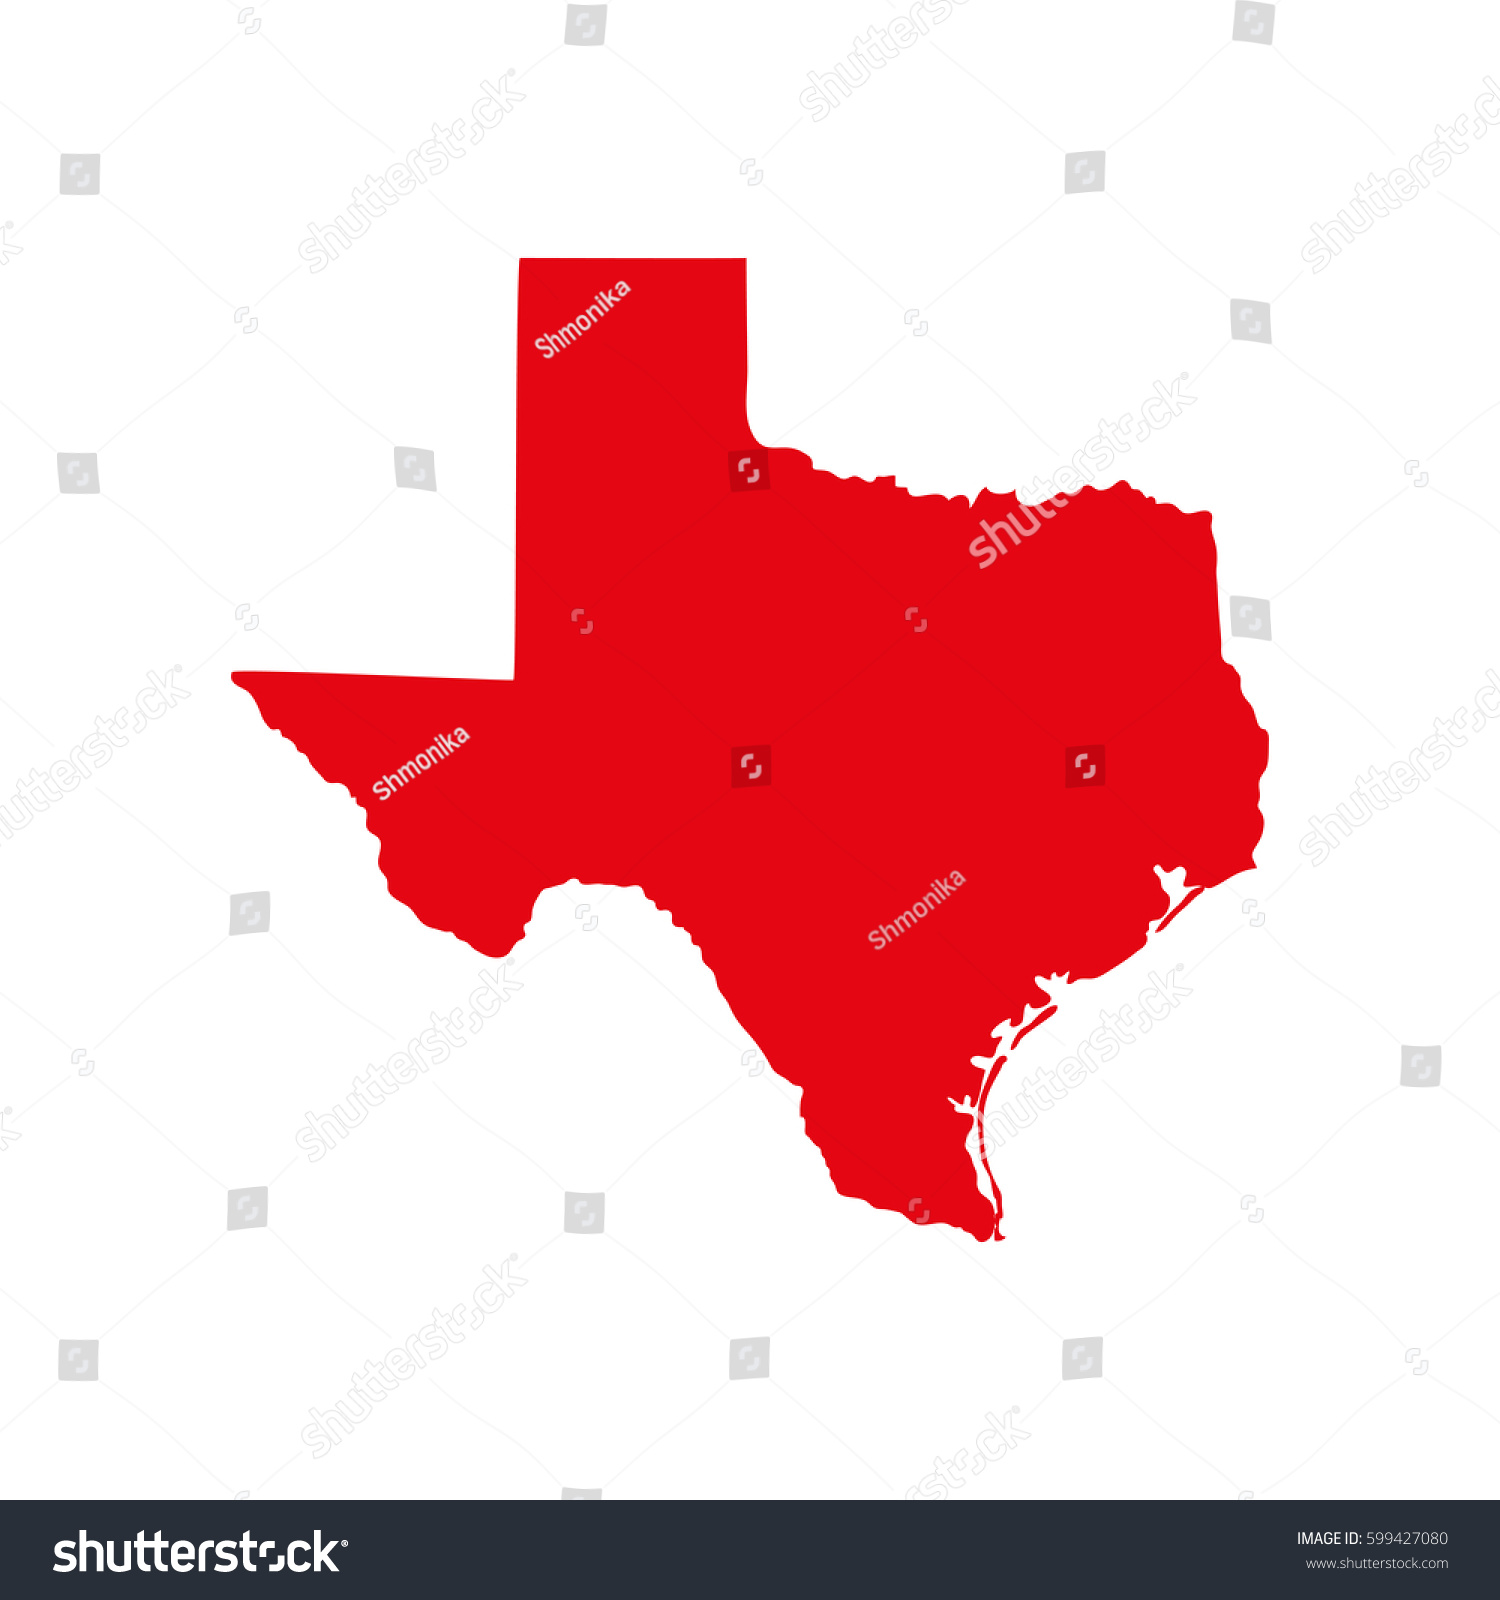 Us House District Map Texas Globalinterco - Texas us house district map